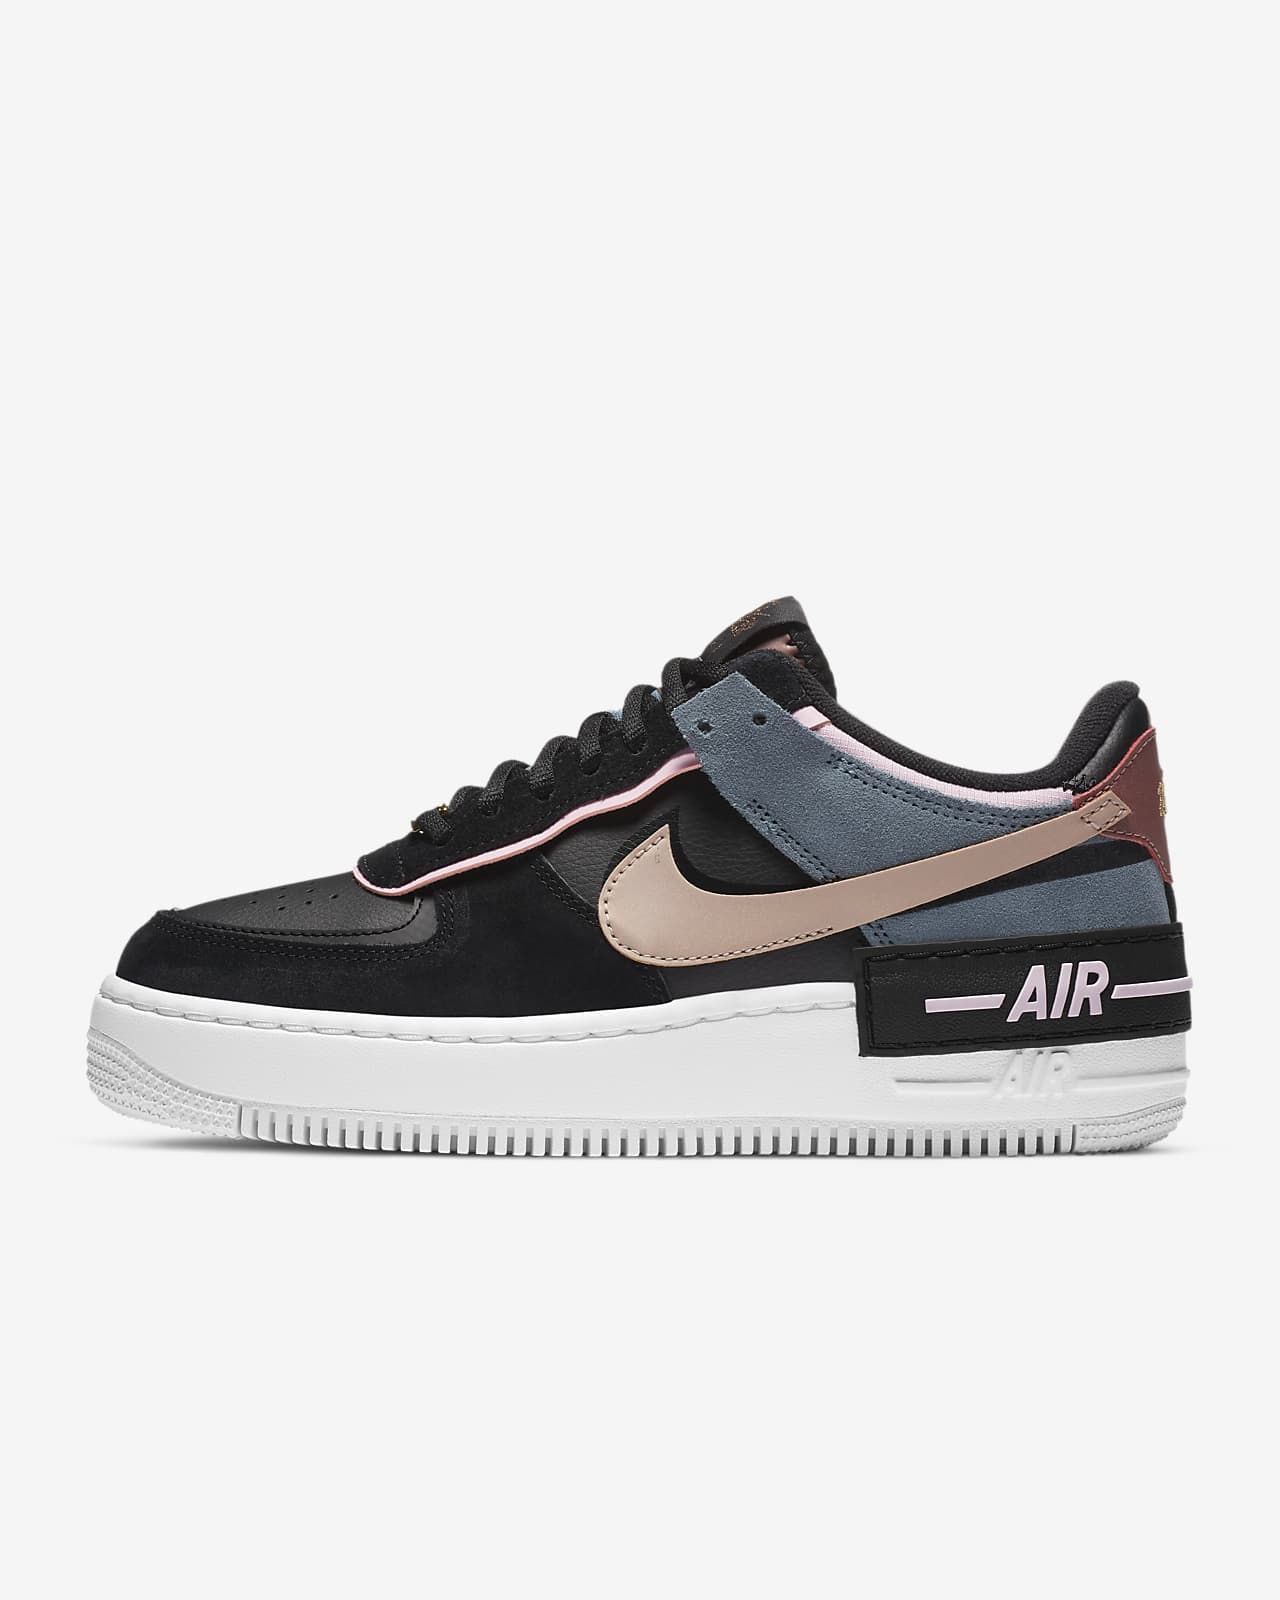 Nike Air Force 1 Shadow Women S Shoe Nike Com Buy the nike air force 1 shadow w in white from end. nike air force 1 shadow women s shoe